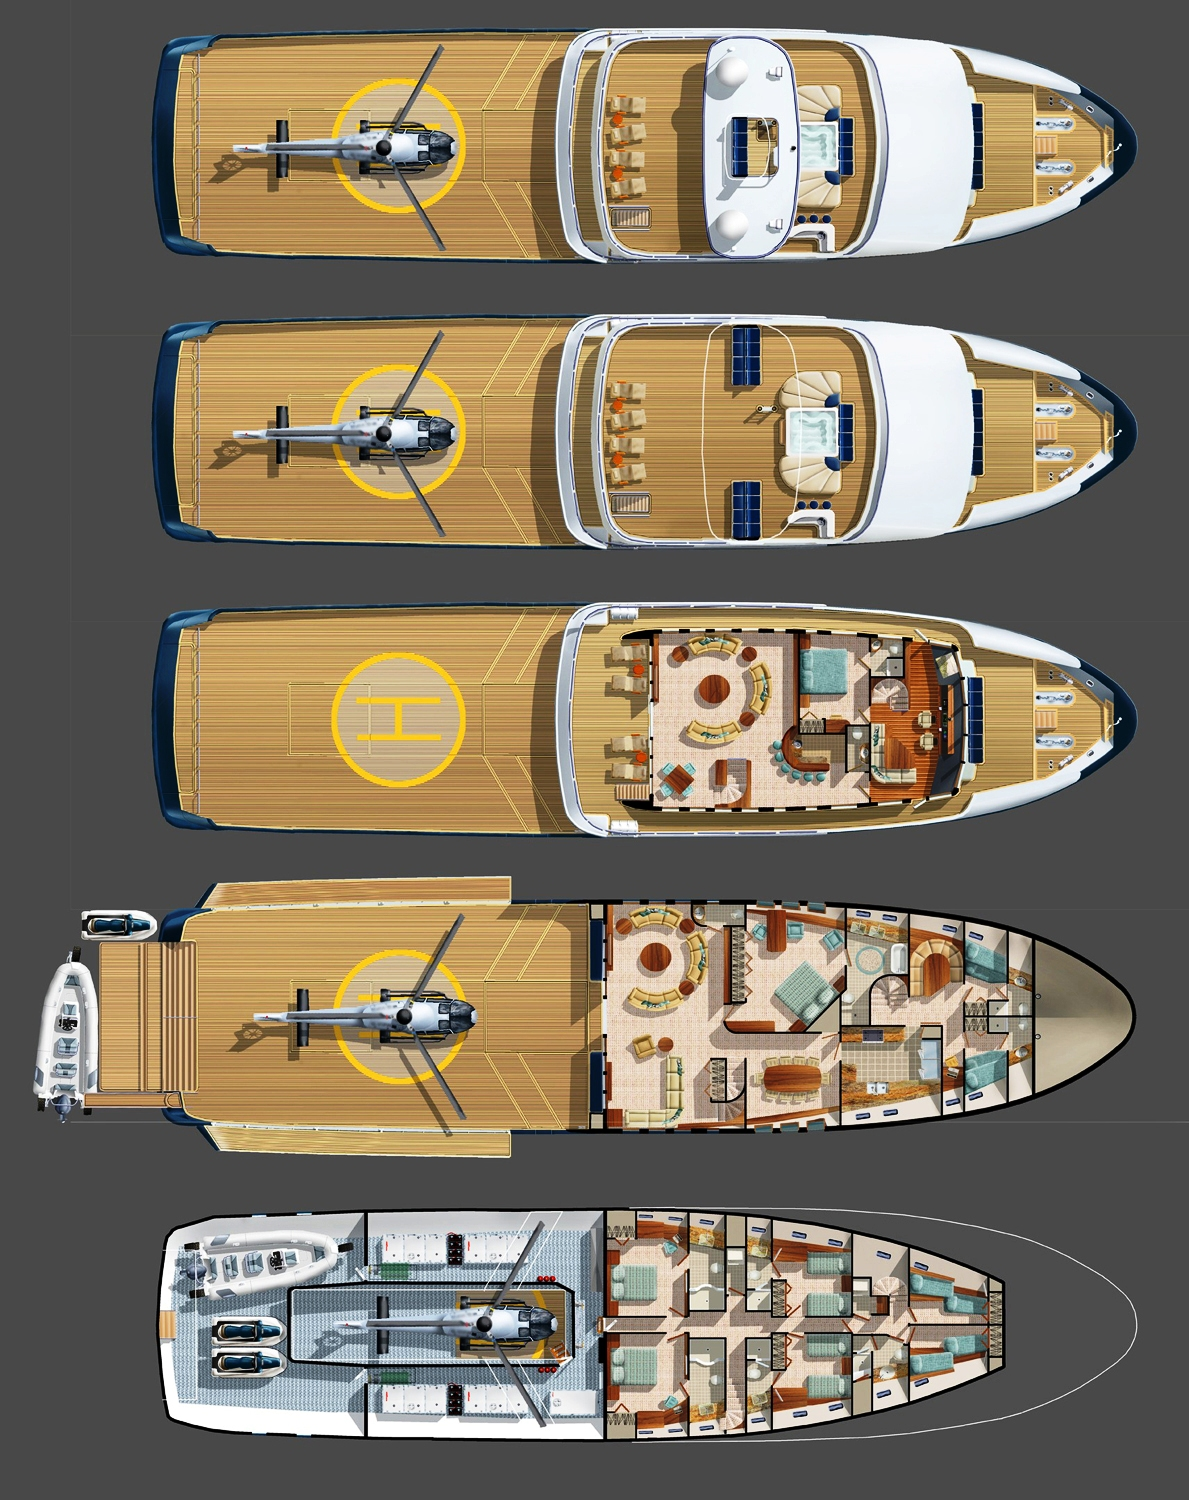 The bray ocean explorer yacht deck plans yacht charter for The world deck plans